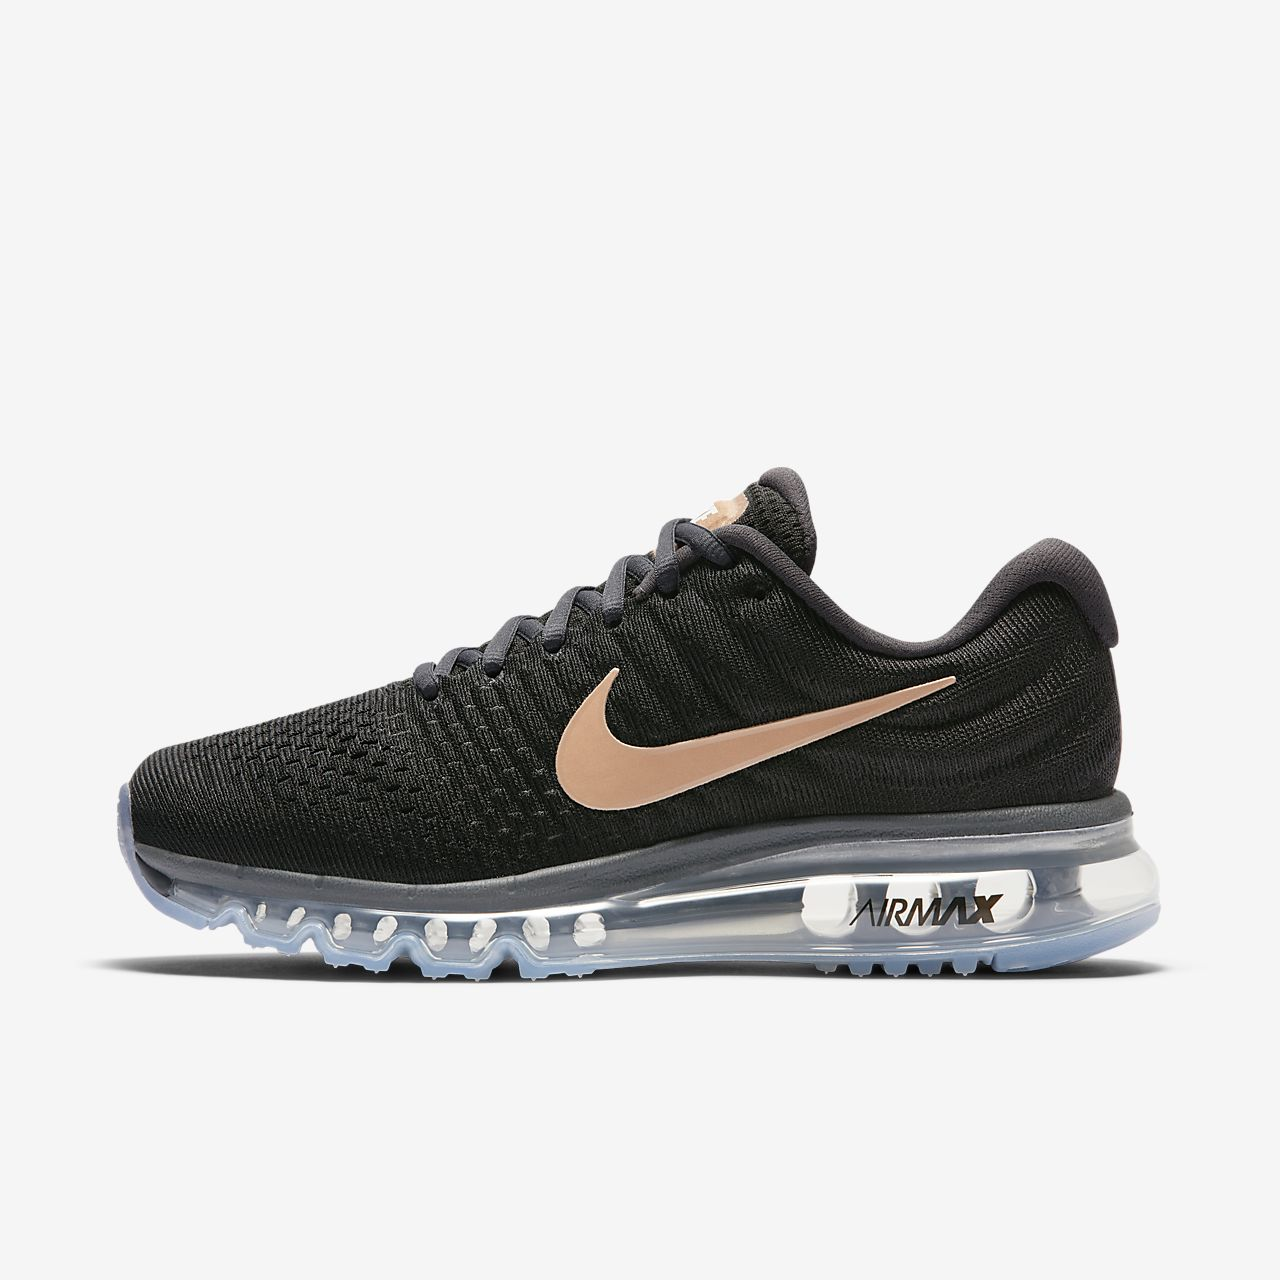 2017 air max all black nz